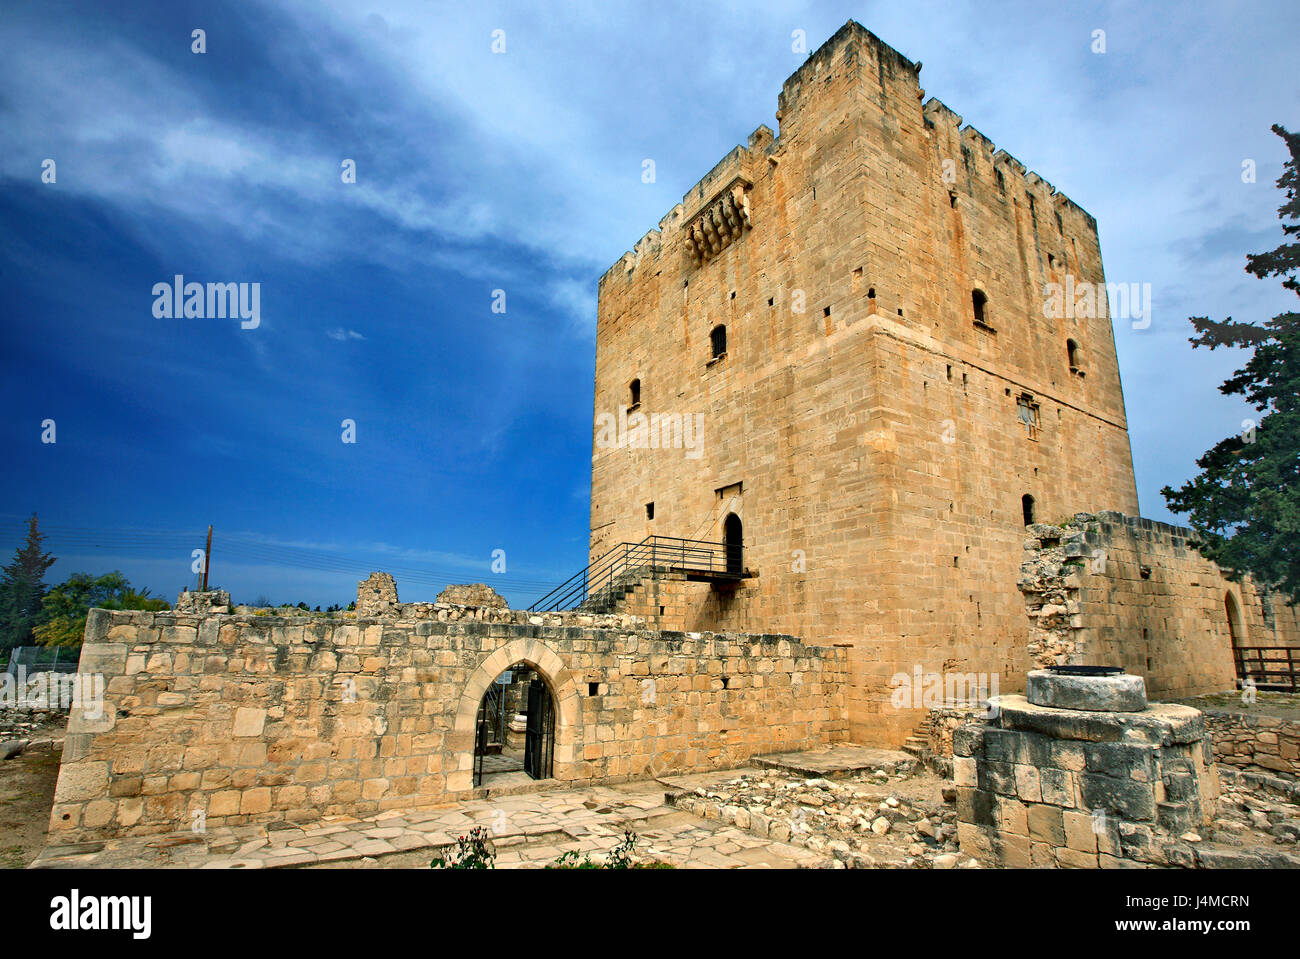 Kolossi Castle, a former Crusader stronghold on the south-west edge of Kolossi village, Limassol district, Cyprus - Stock Image